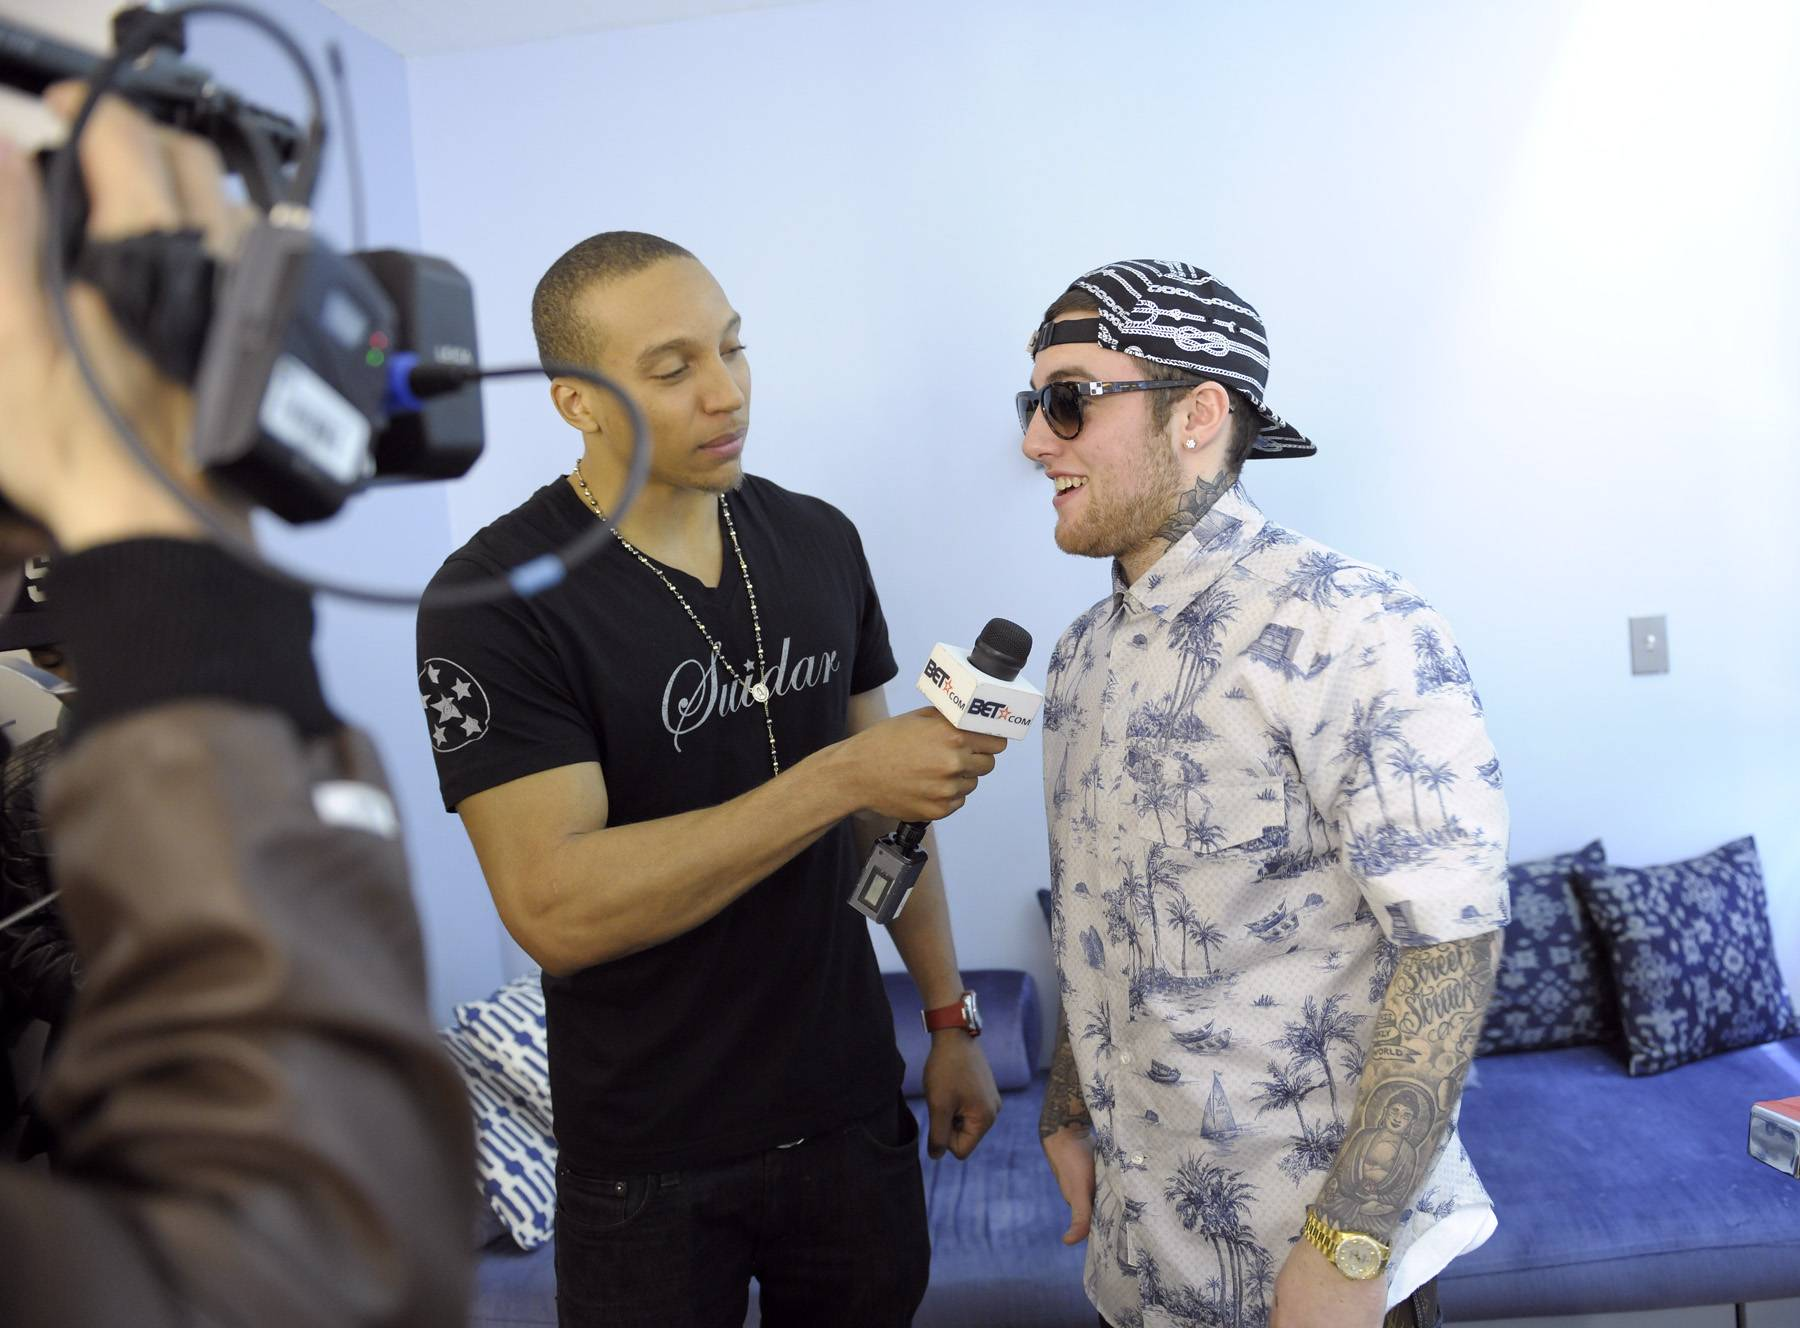 Lets Get It - Tony Anderson of bet.com interviews Mac Miller before the show in the green room at 106 & Park, April 26, 2012. (Photo: John Ricard / BET)